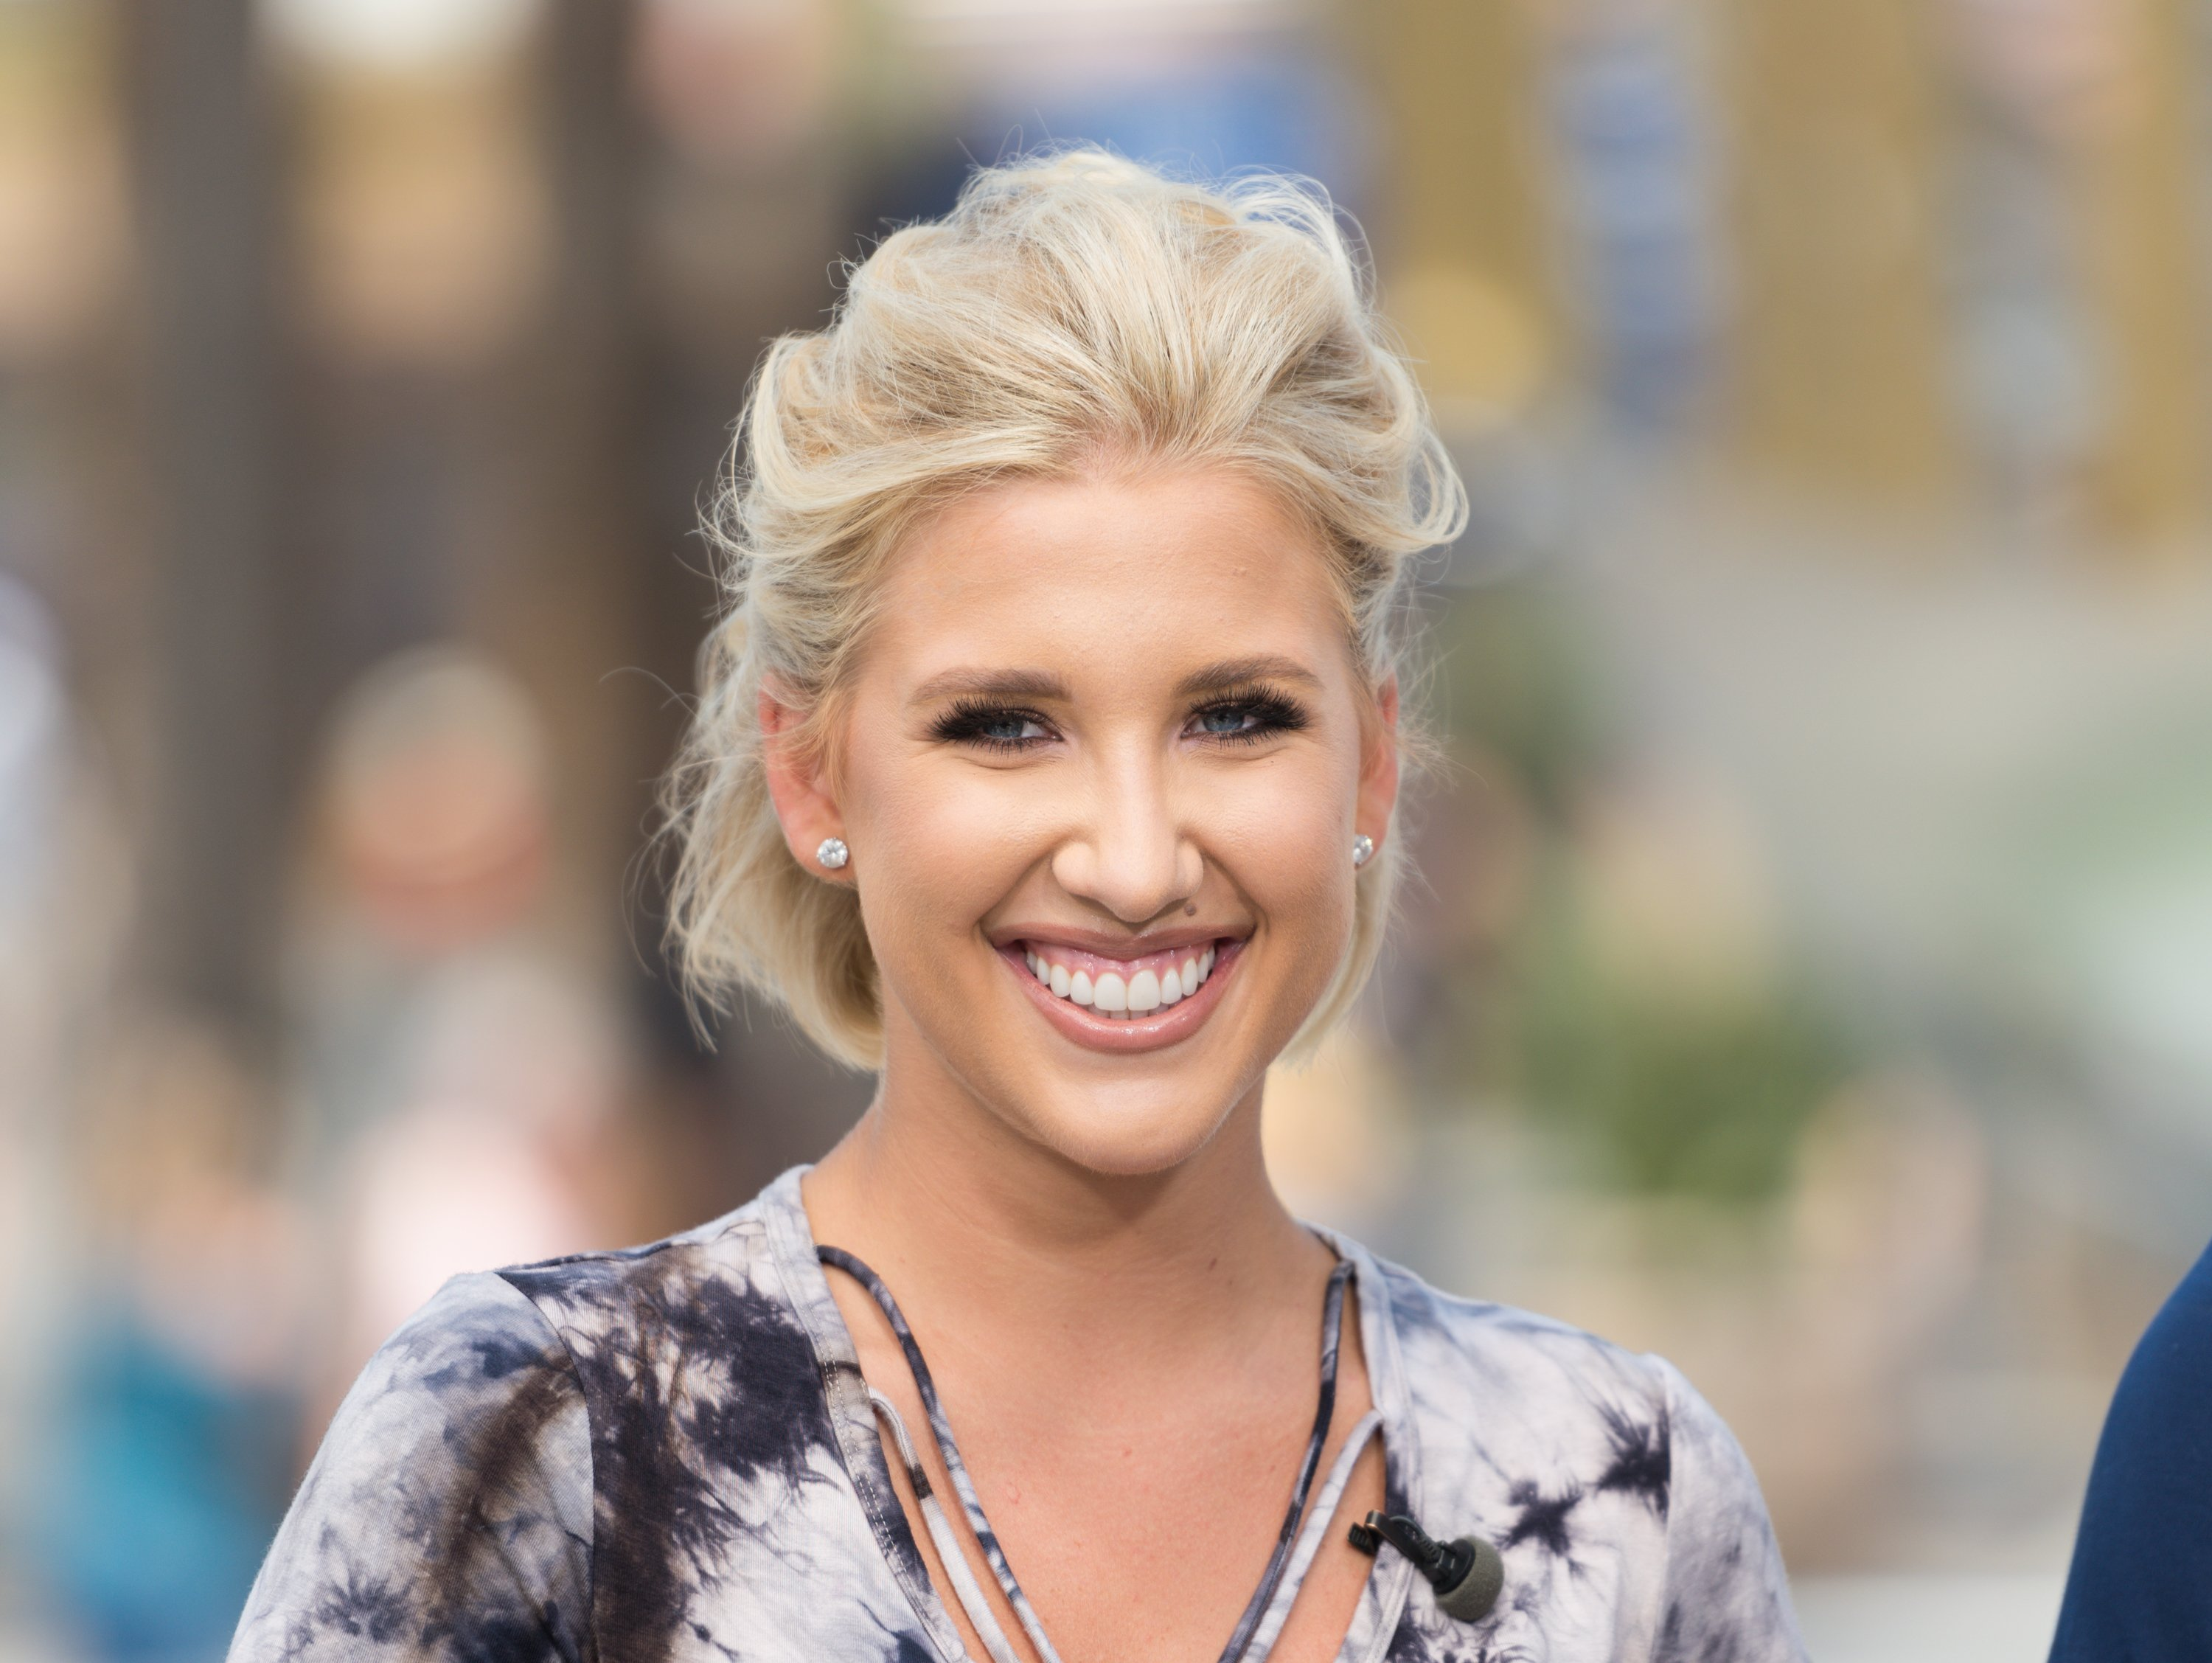 """Savannah Chrisley quickly adapted to changes when she first appeared in the 2014 reality show, """"Chrisley Knows Best."""" 